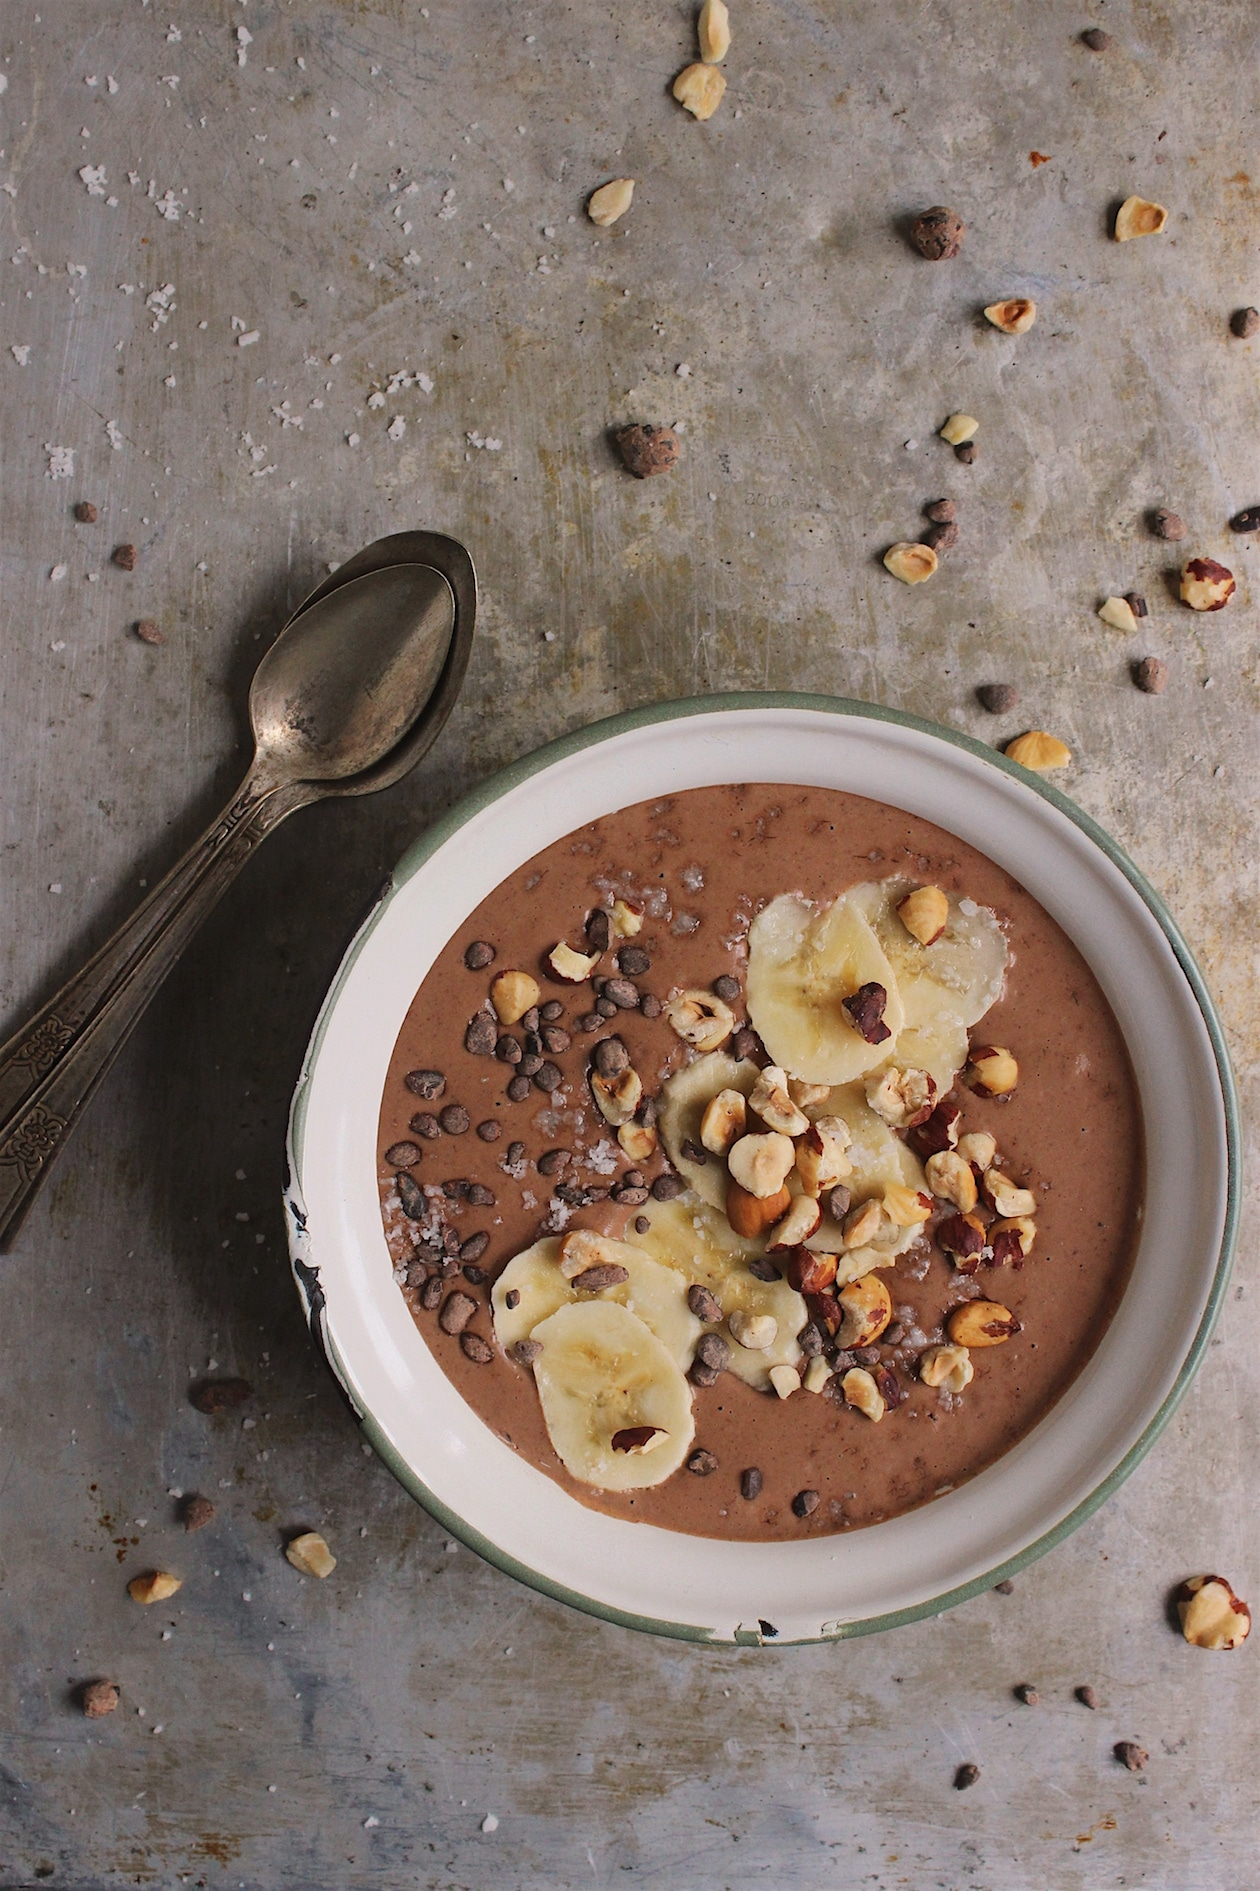 Chocolate Hazelnut Smoothie Bowl with Banana + Cacao Nibs